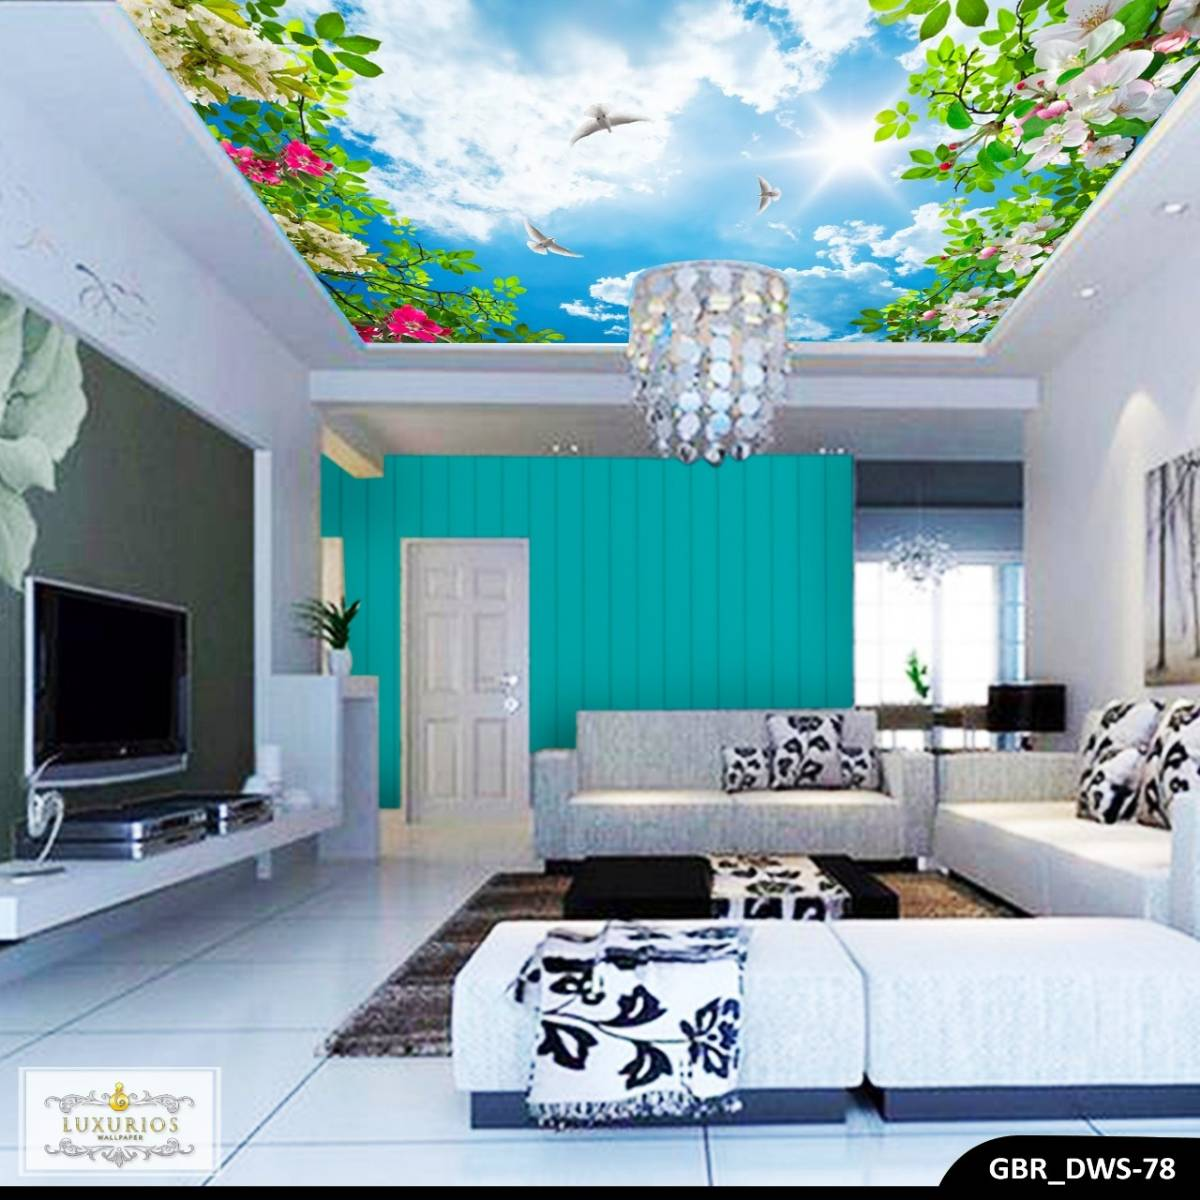 Wallpaper Custom Wallpaper 3d Wallpaper Plafon Langit Cerah 40